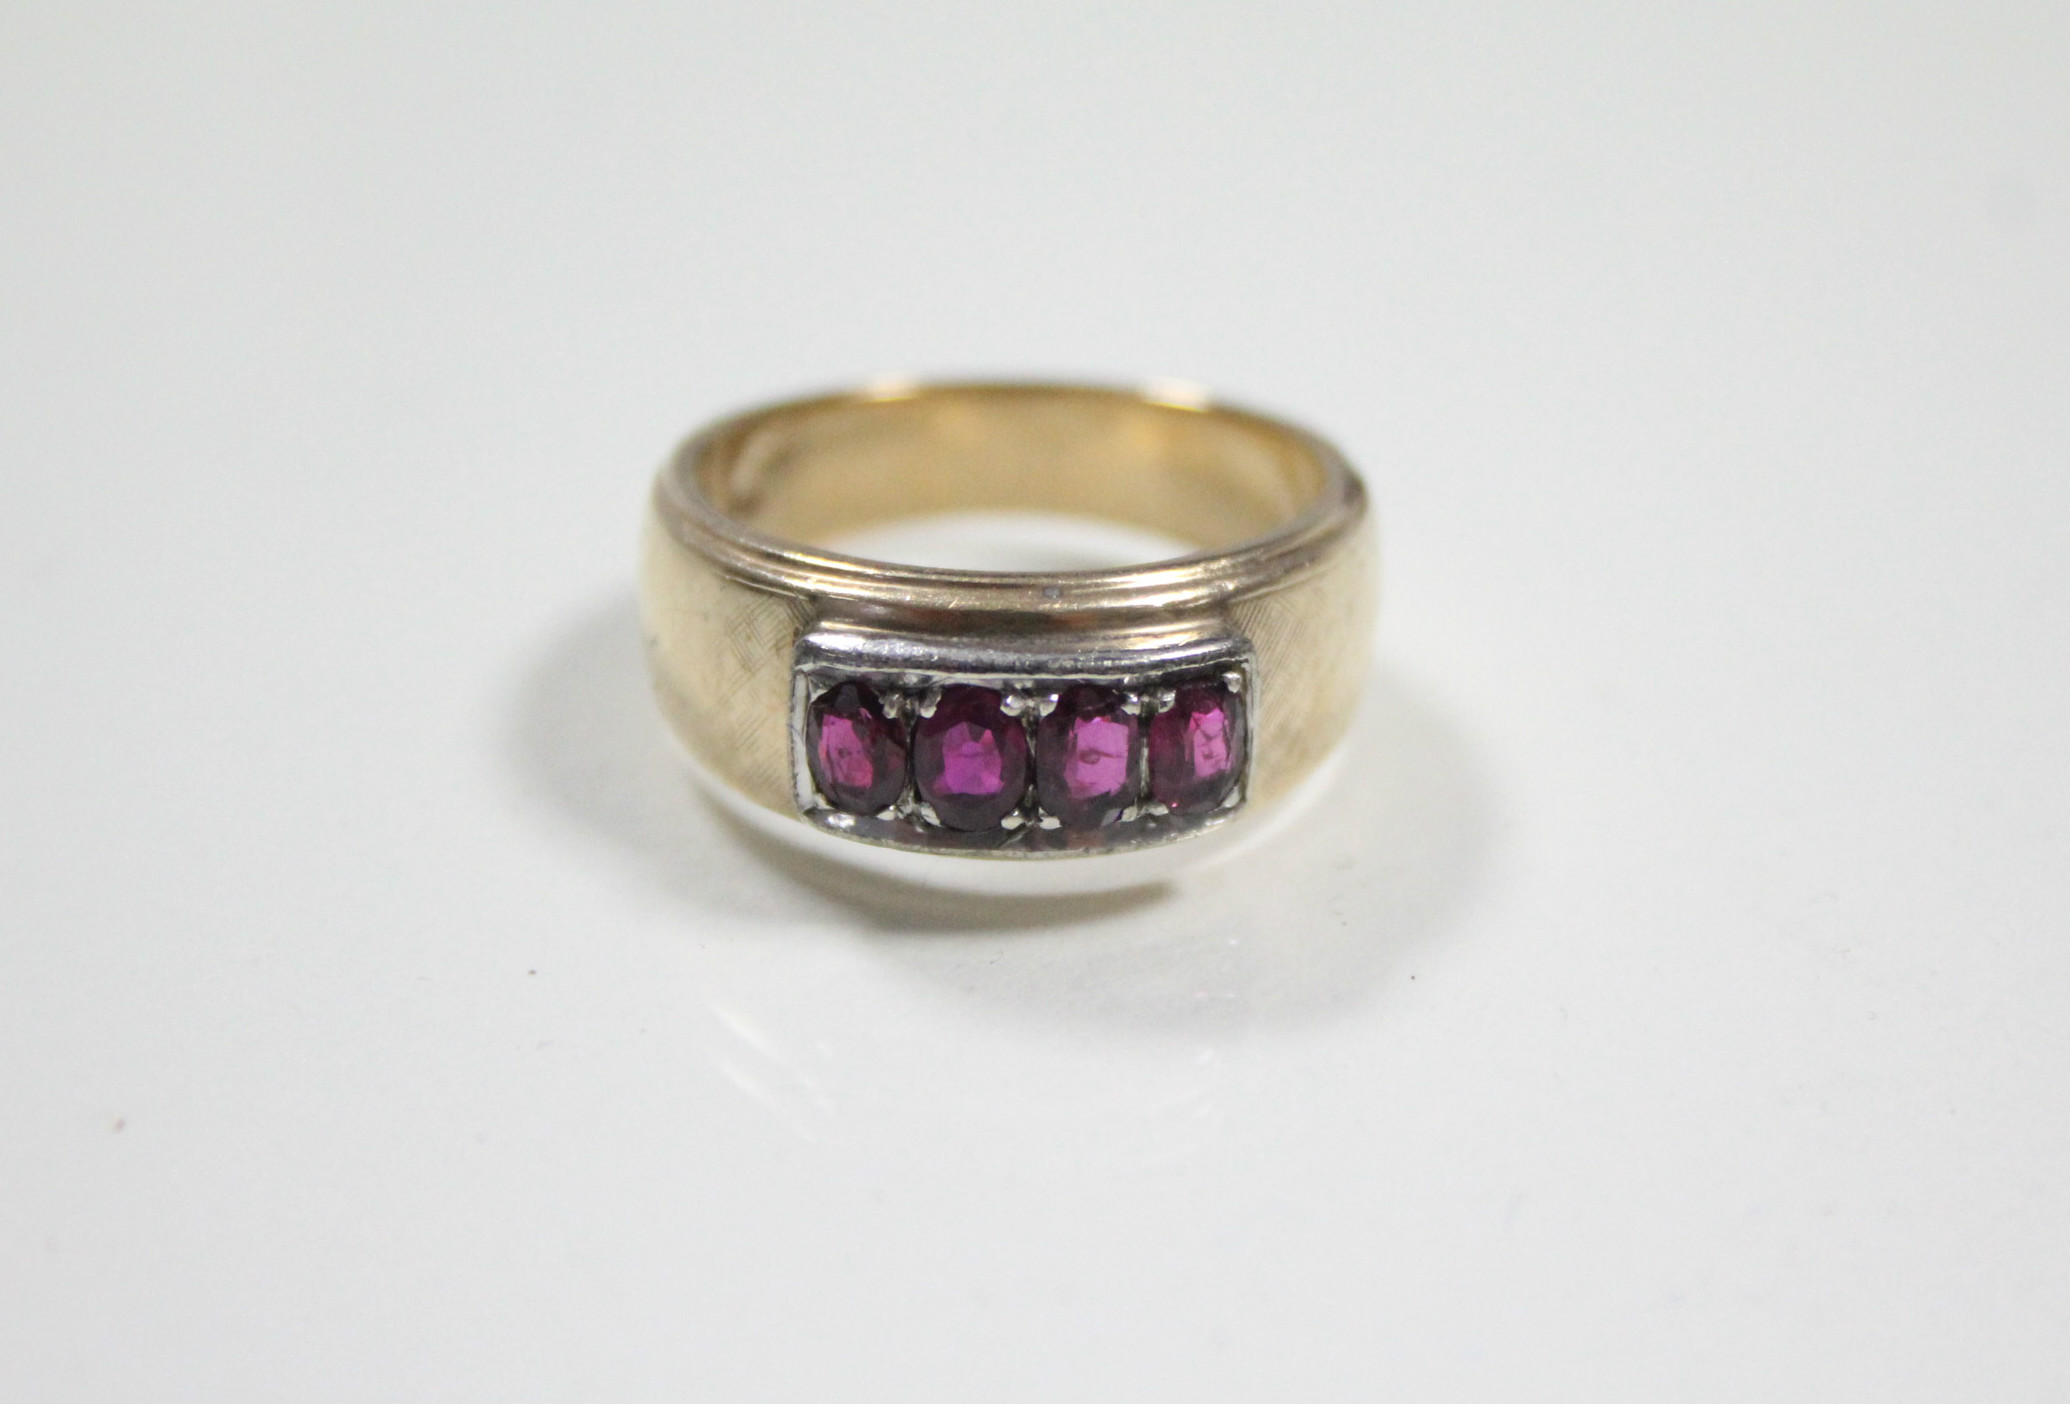 Lot 51 - A 14K gent's ring set four oval rubies.